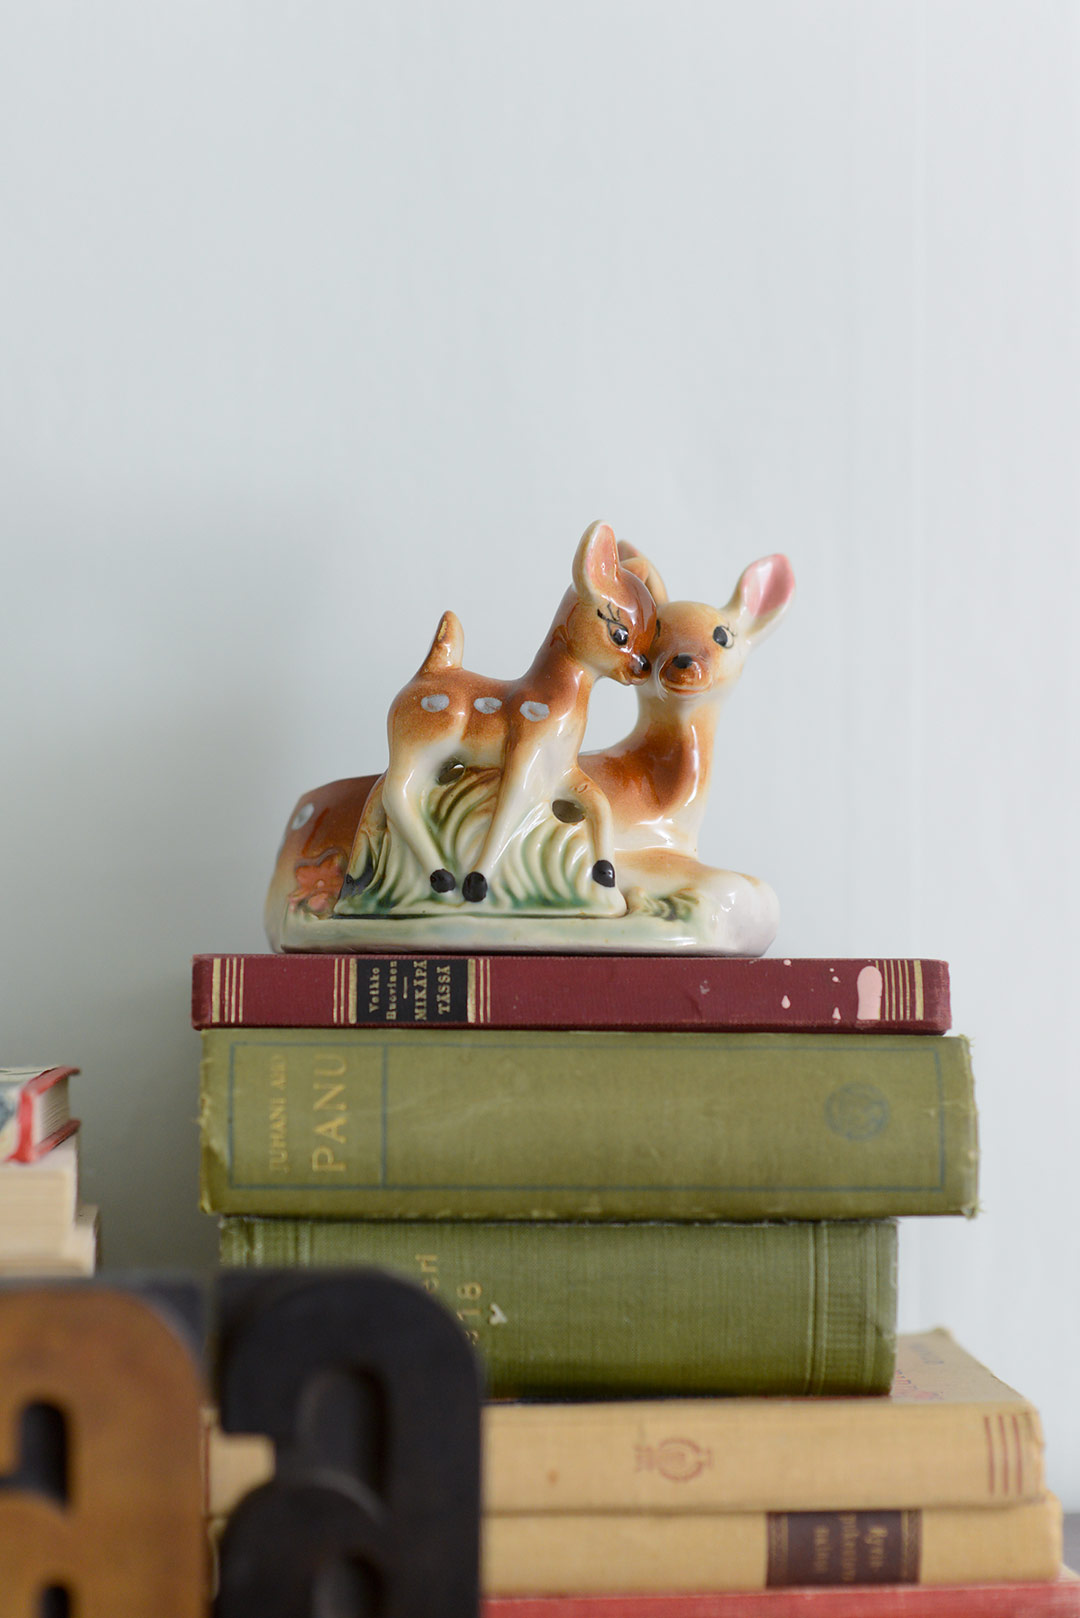 Vintage porcelain deer and vintage books